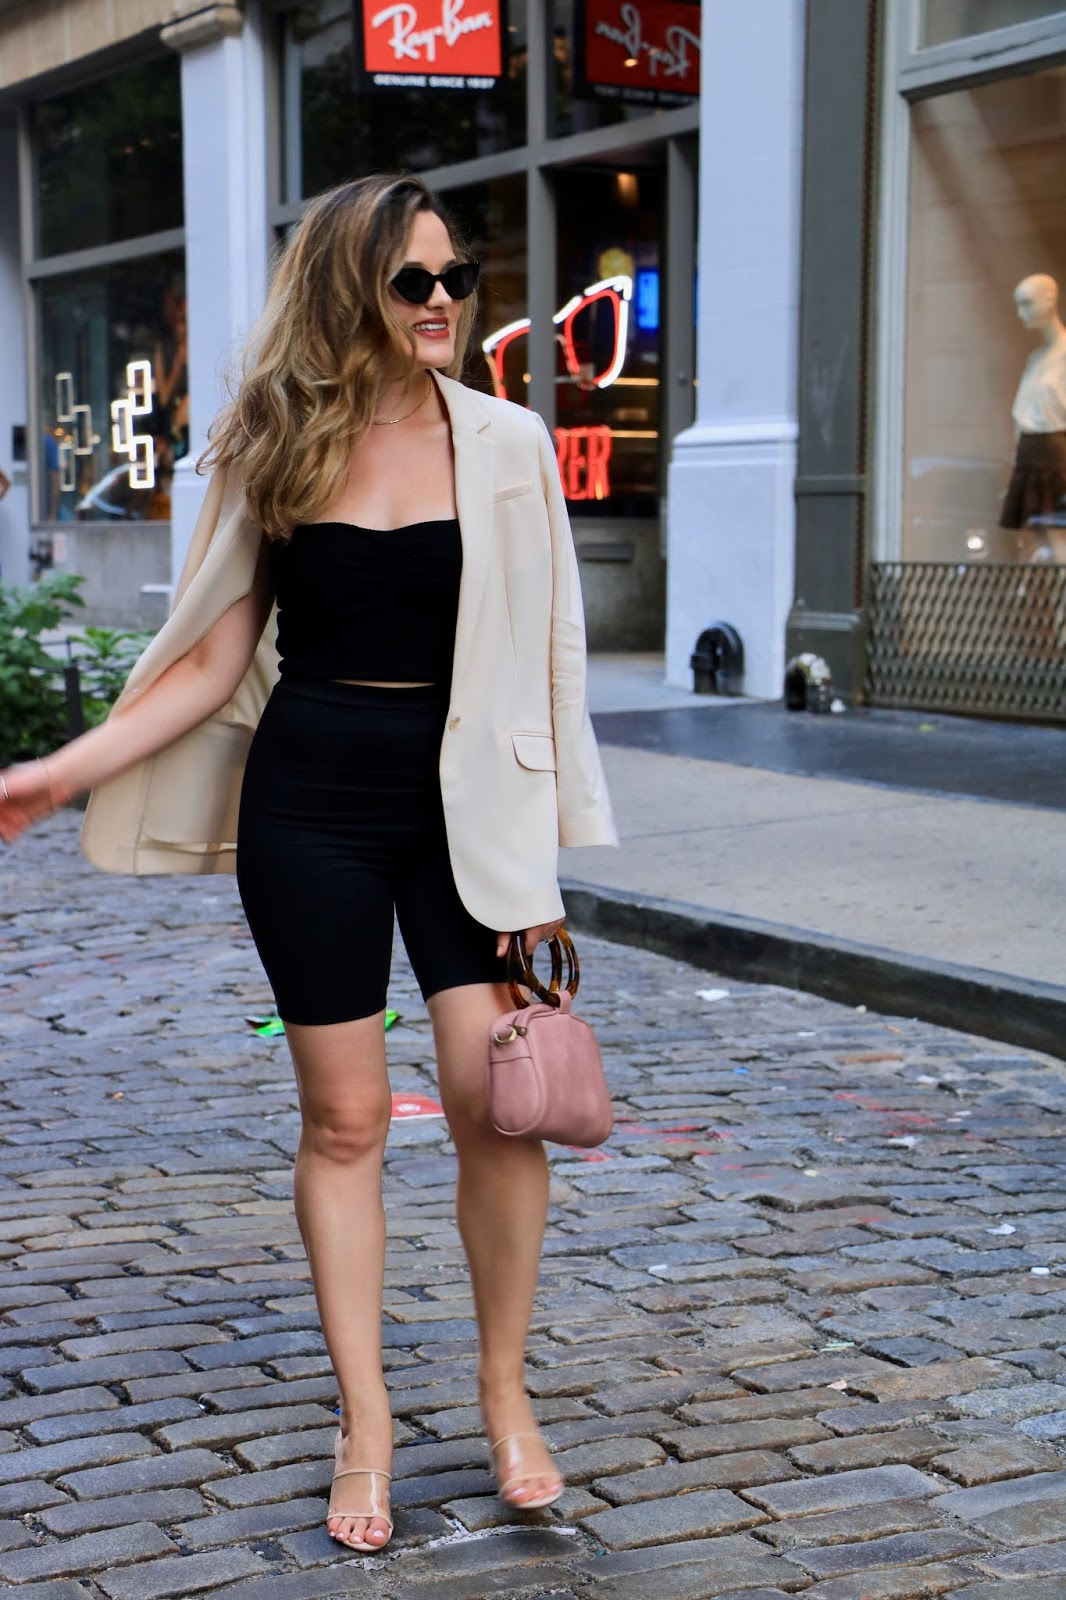 Nyc fashion blogger Kathleen Harper wearing a bike shorts and blazer outfit.